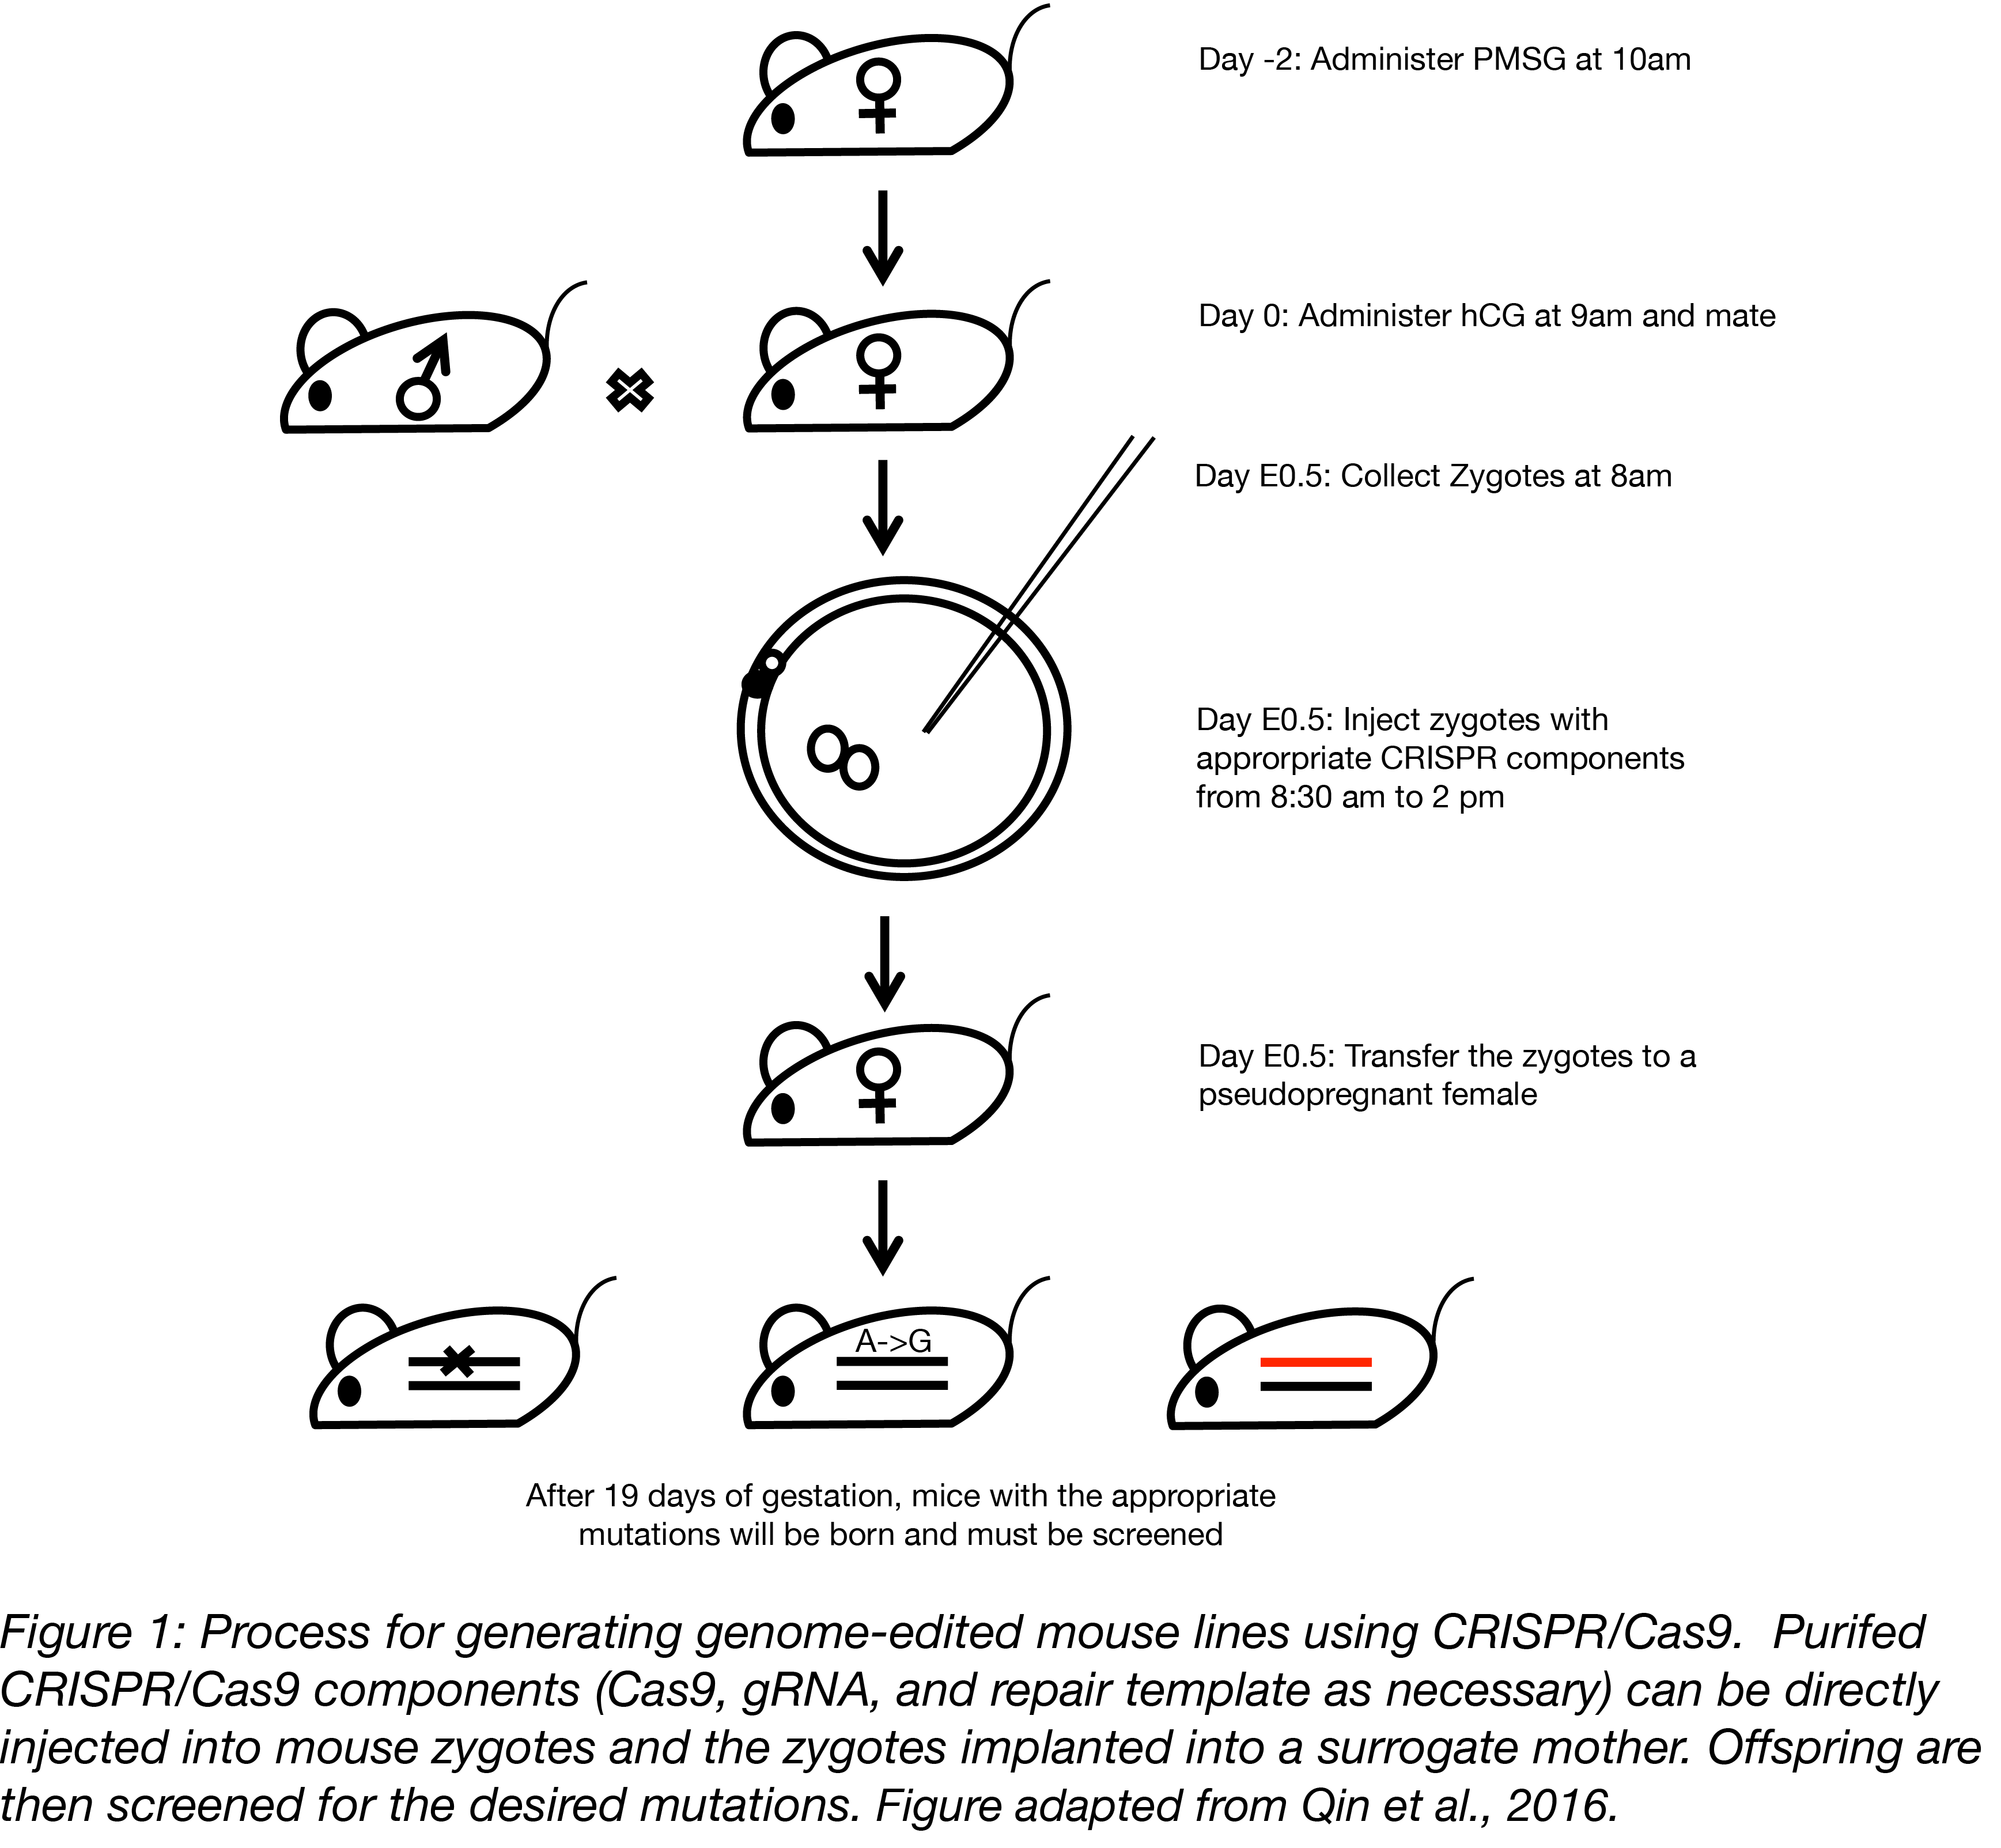 Mouse genome editing process with CRISPR/Cas9